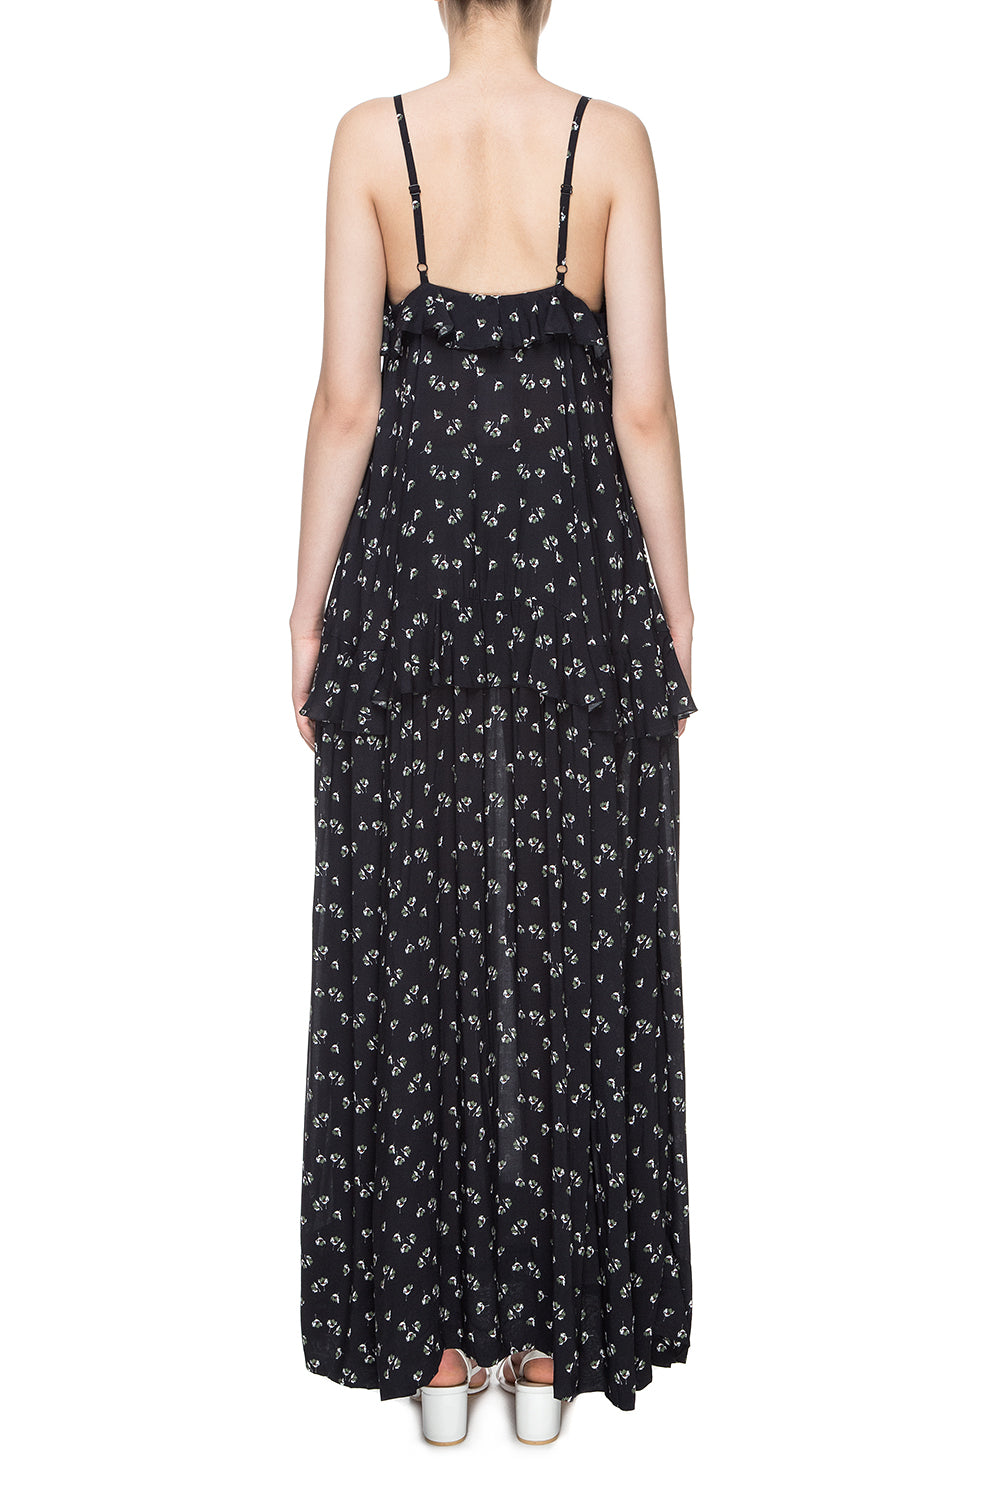 Black floral printed sundress